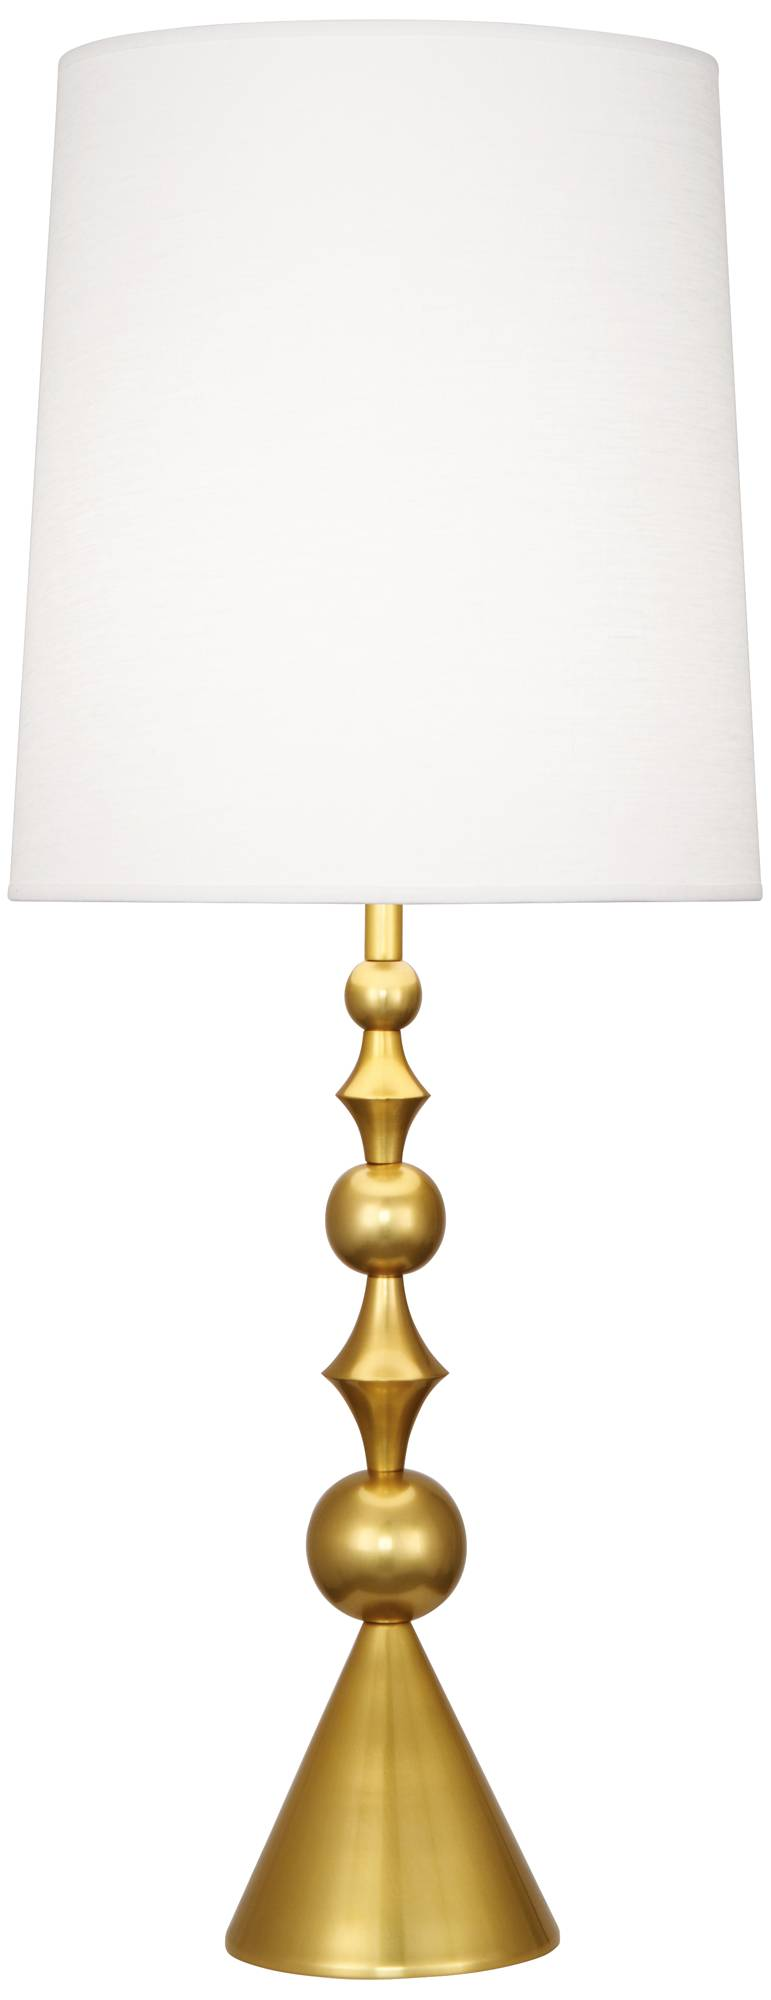 Jonathan adler harlequin antique brass table lamp